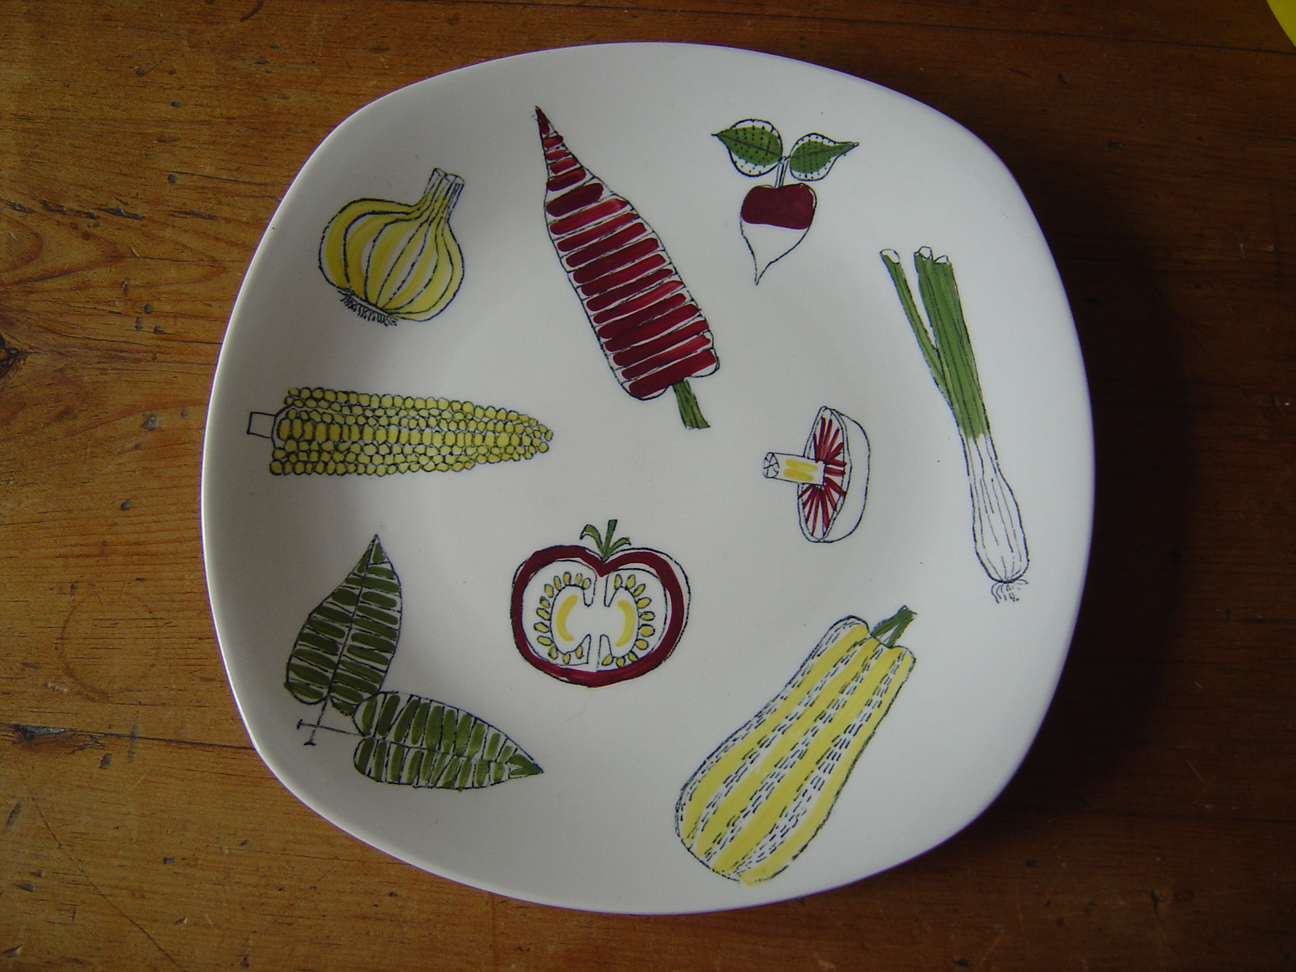 Midwinter salad plate